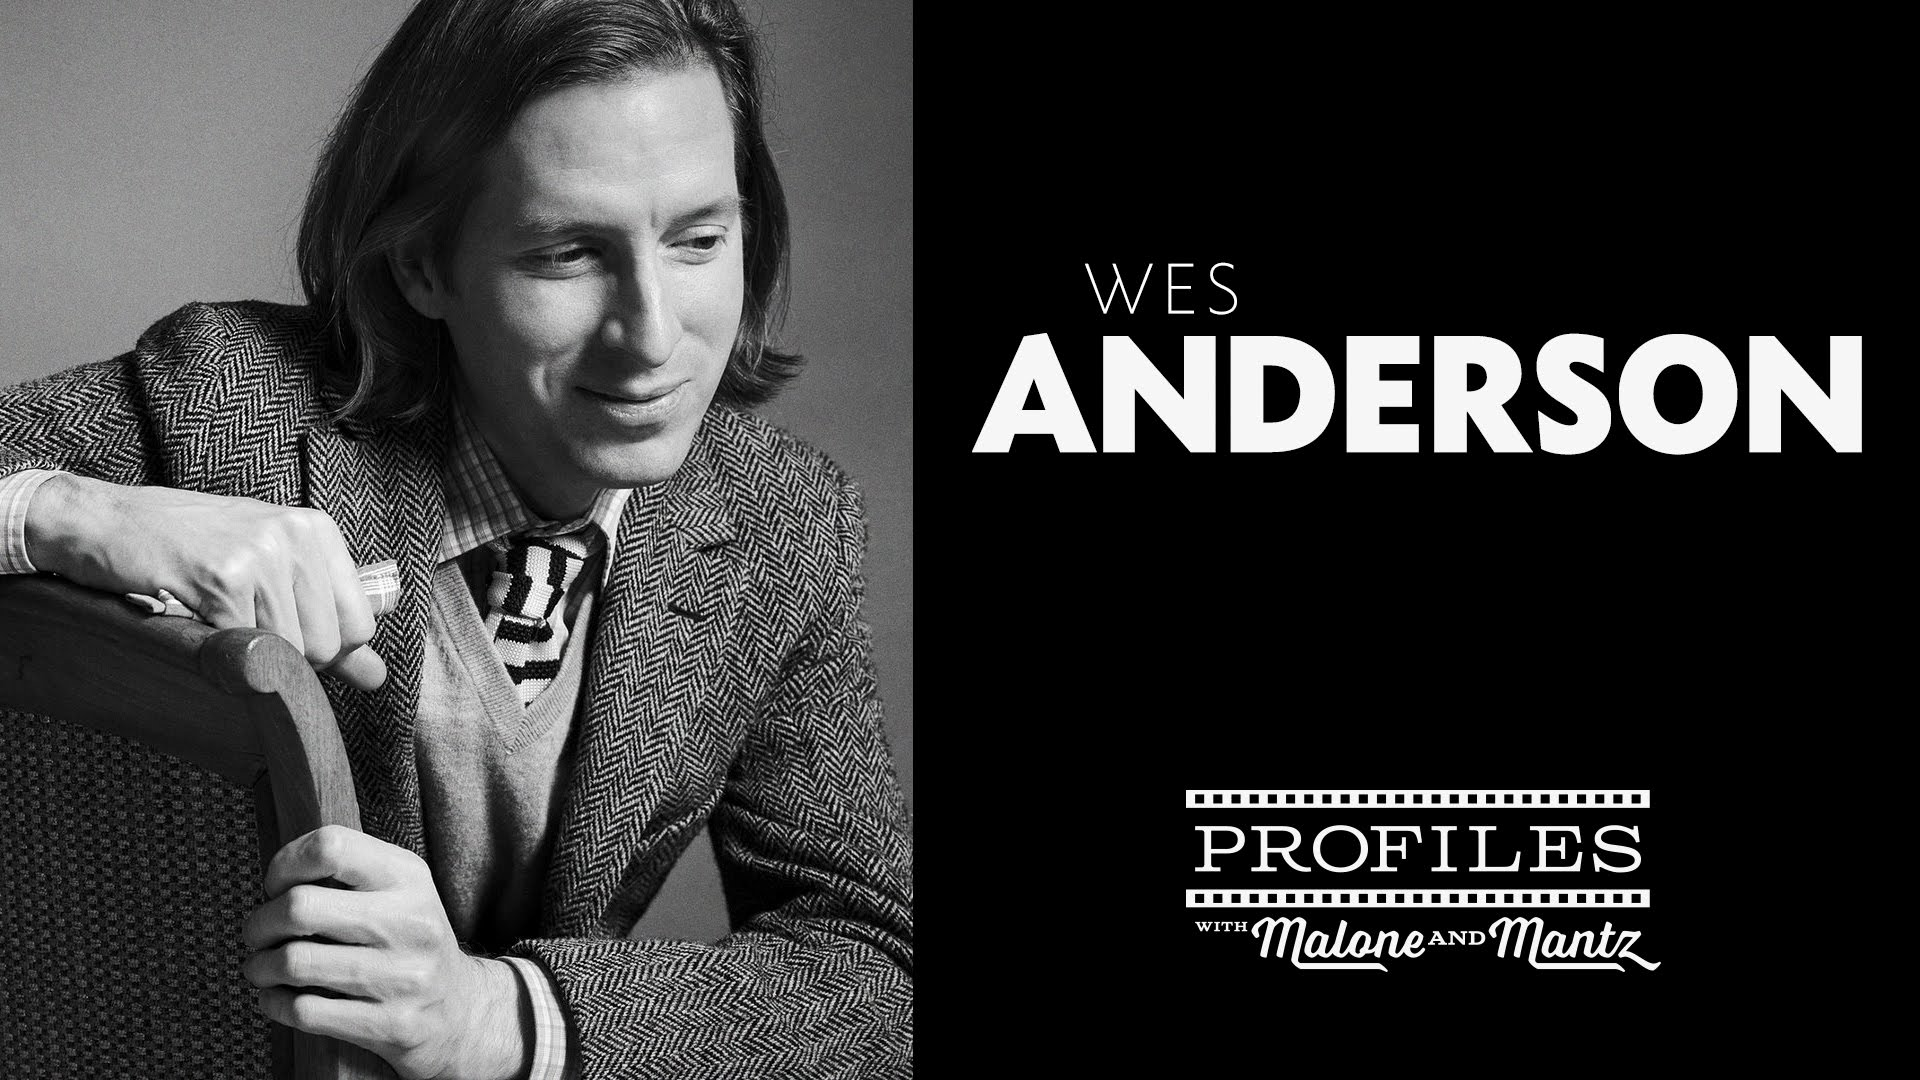 Wes Anderson Profile - Ep #20 (January 13th, 2015)